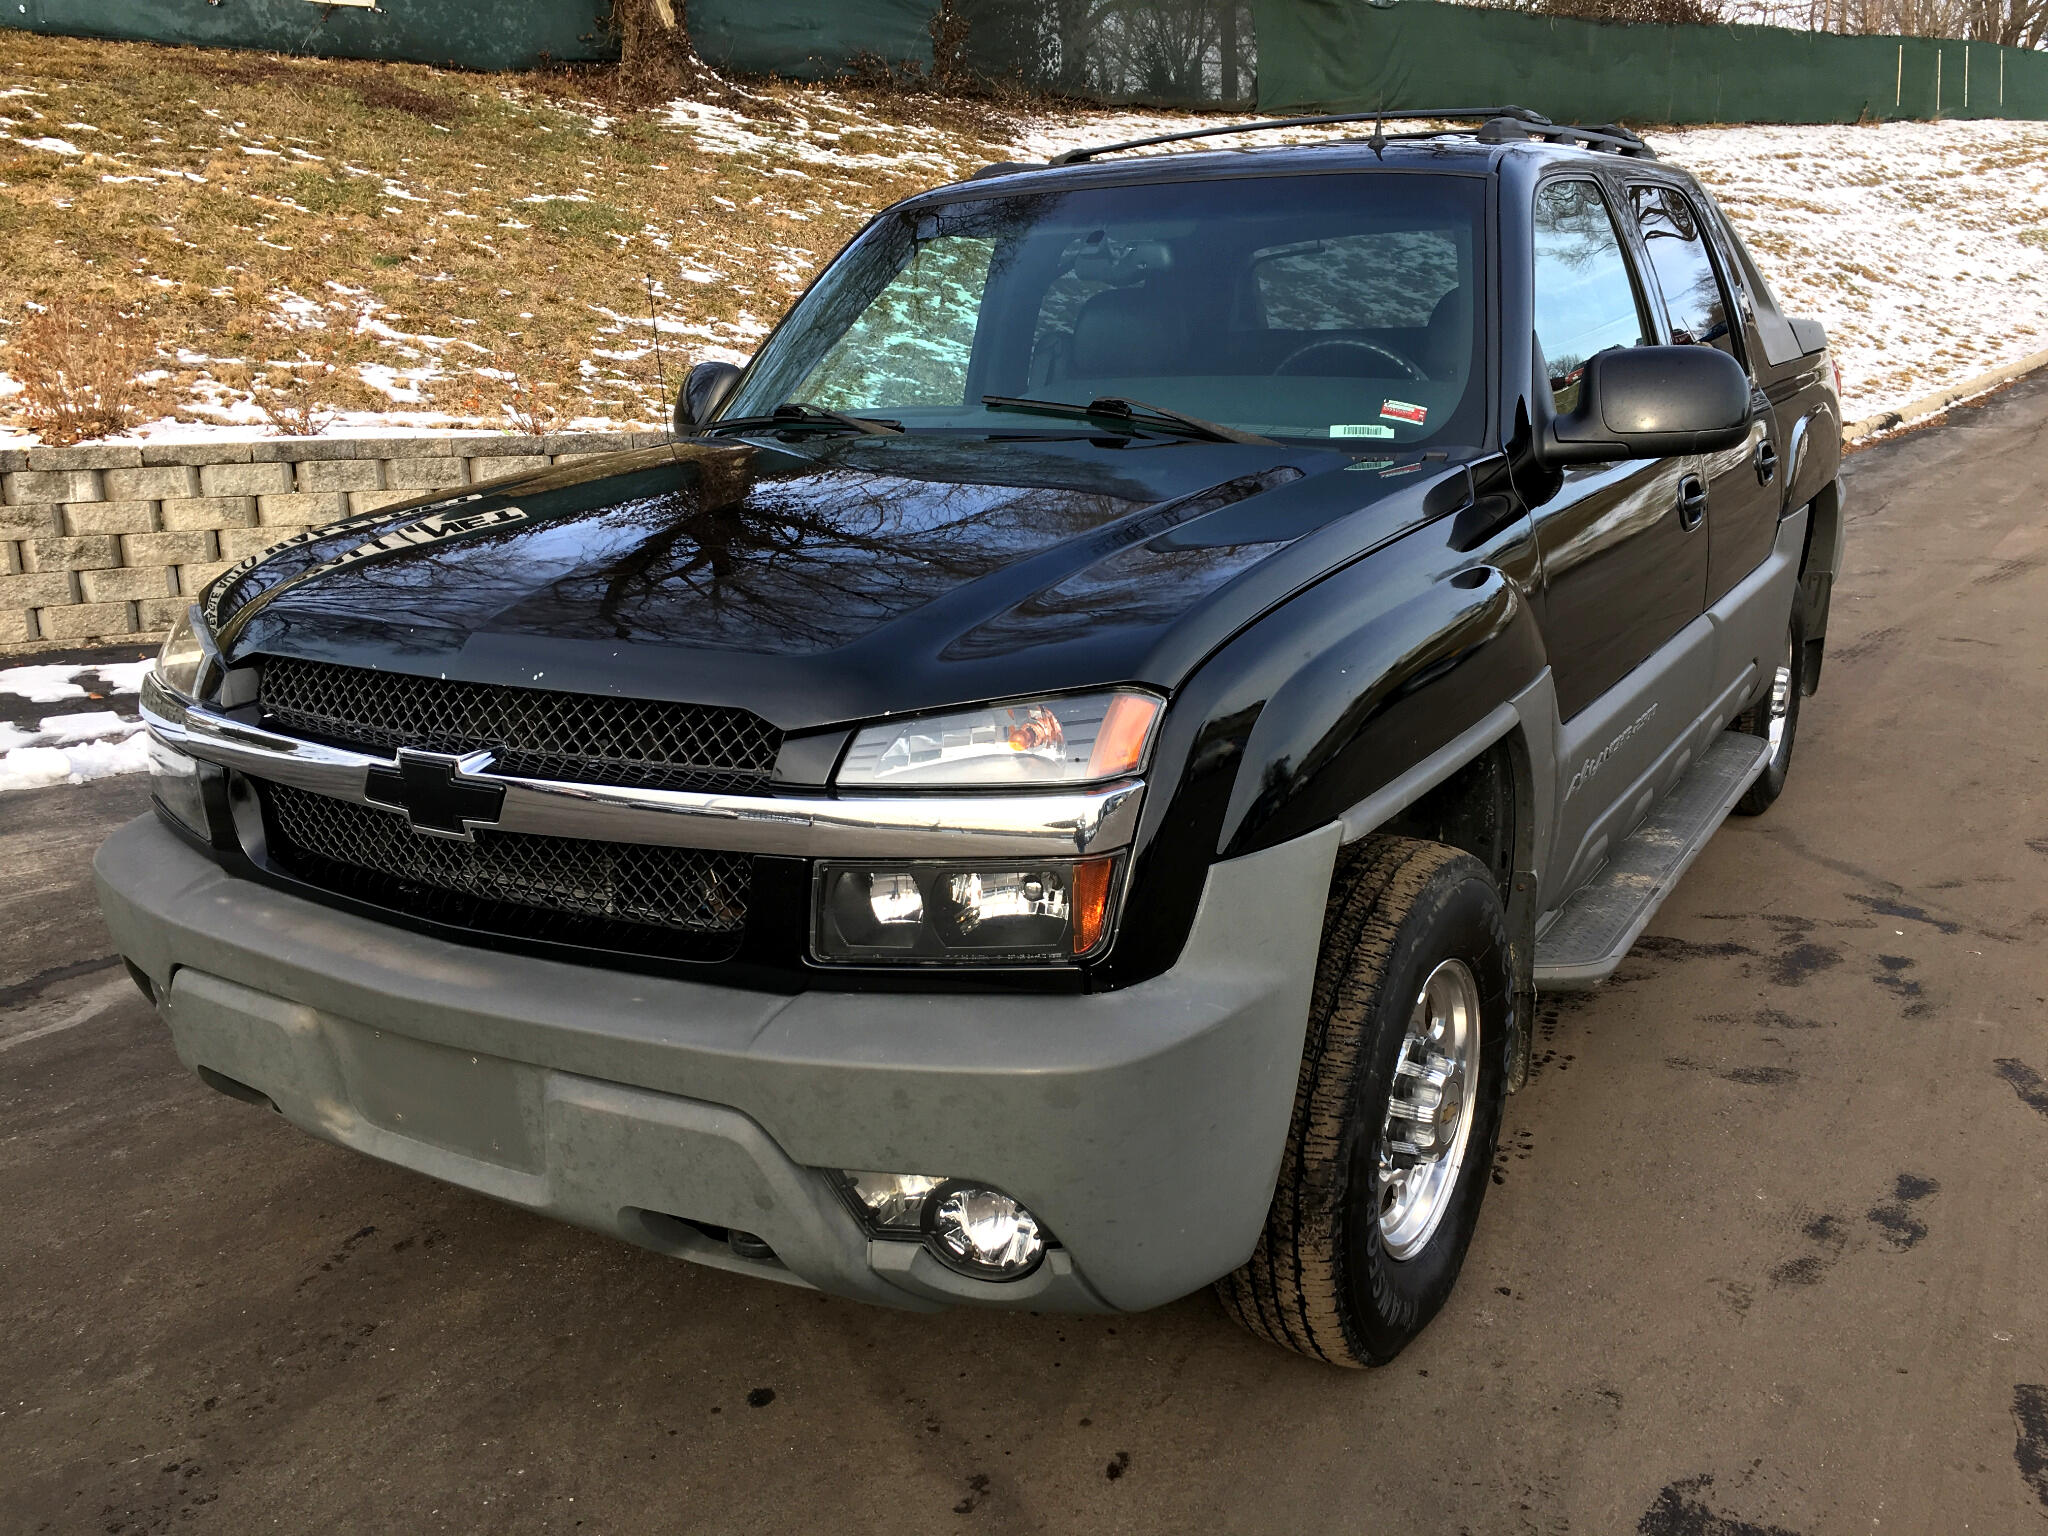 2002 Chevrolet Avalanche 2500 4WD